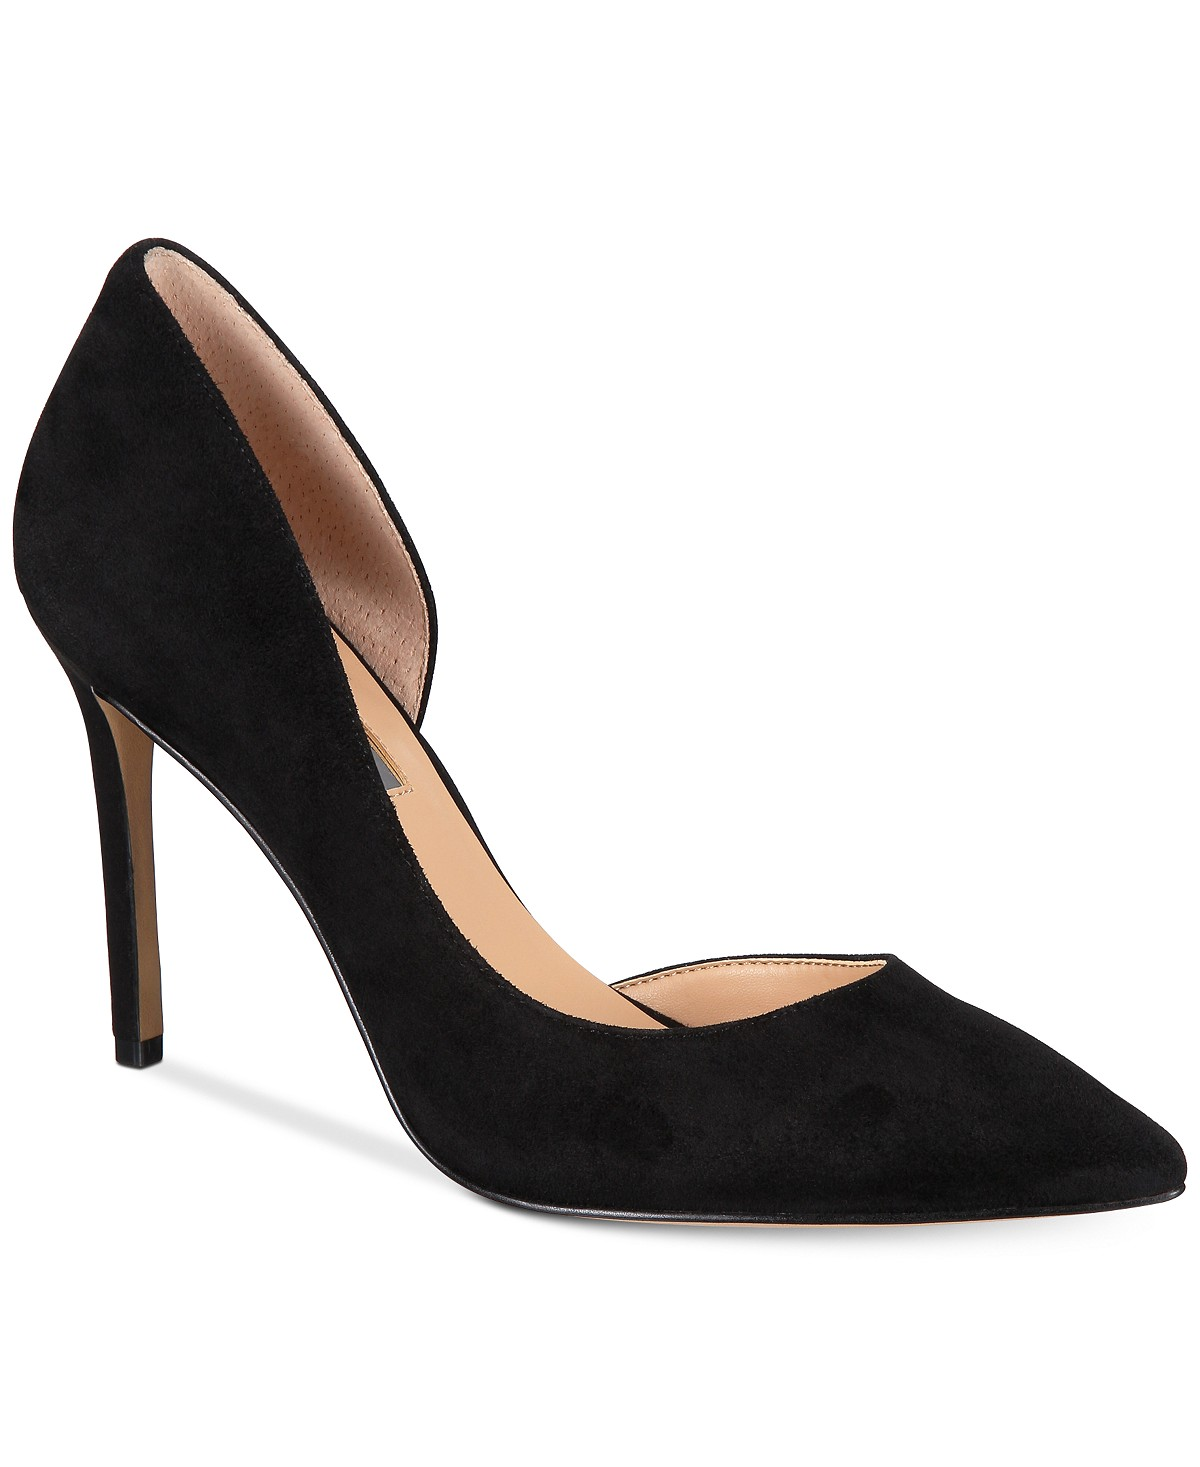 INC Macys D'Orsay pumps.jpg